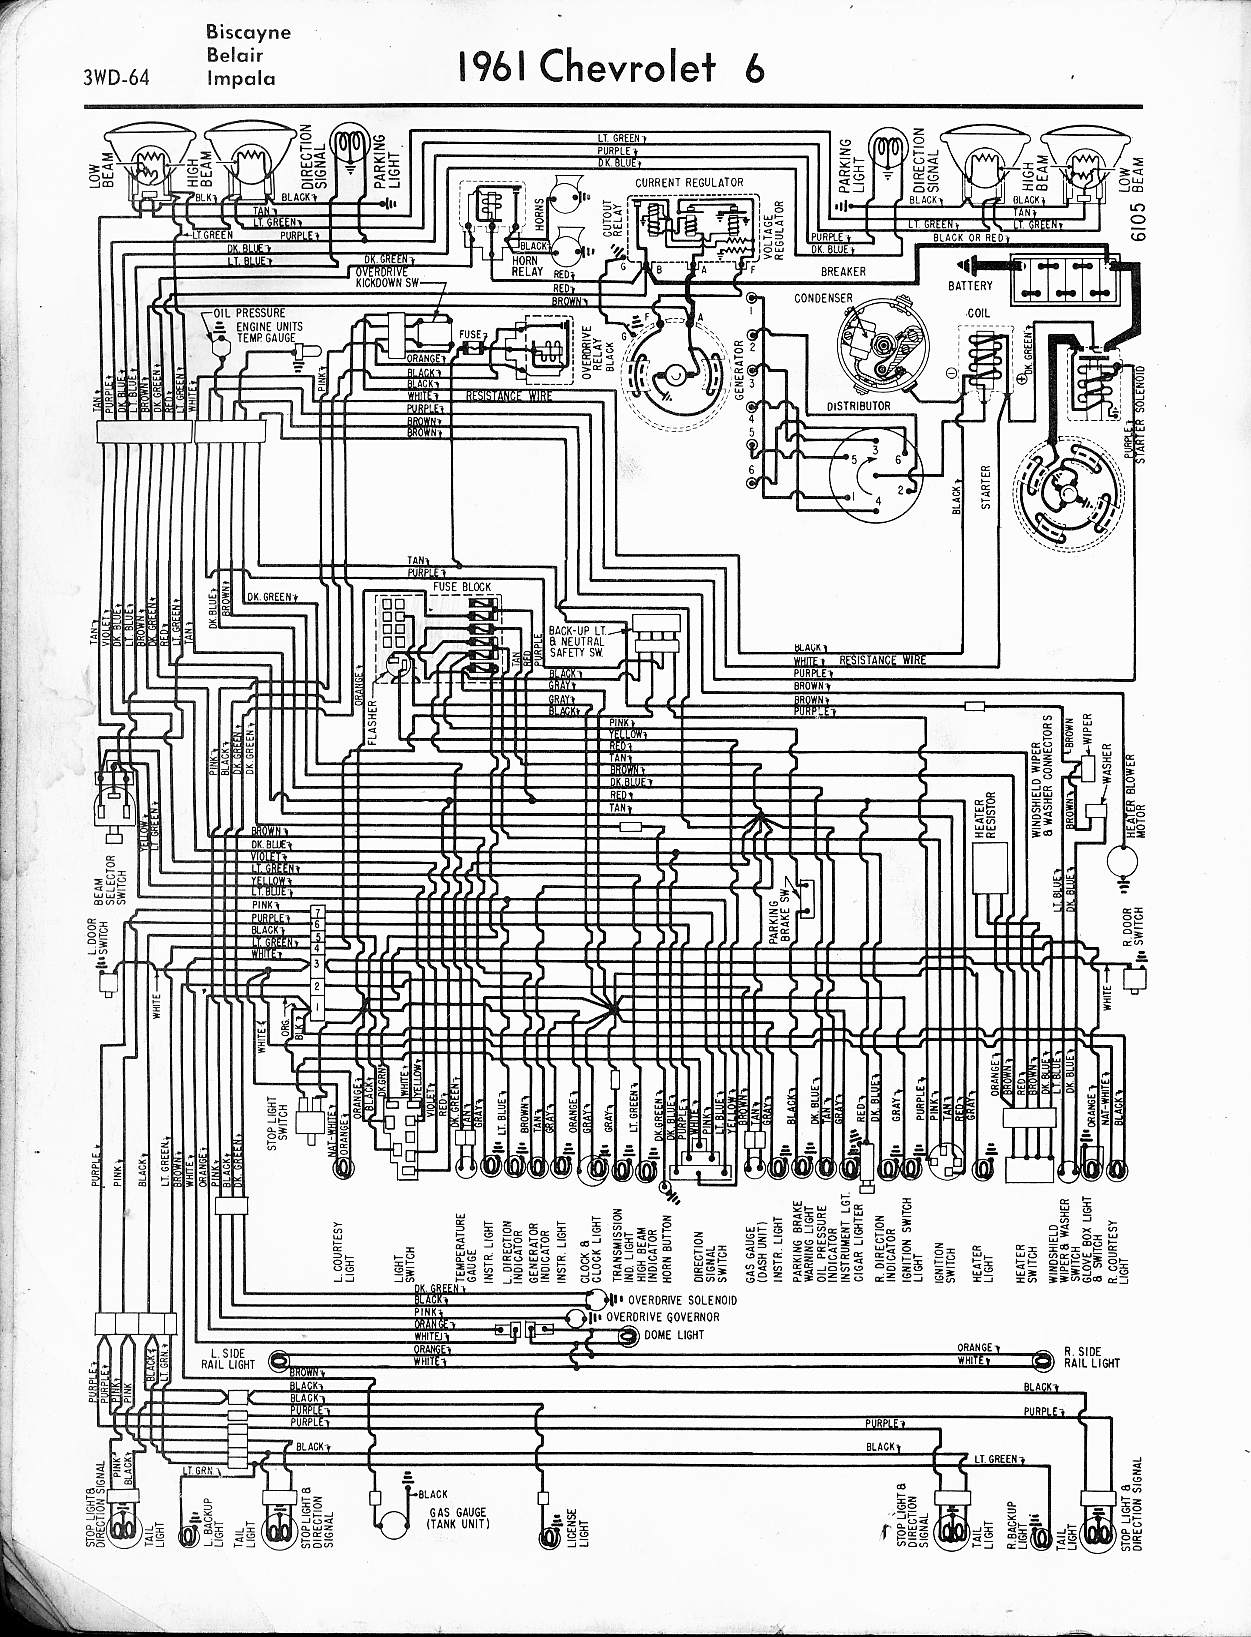 hight resolution of wiring schematic 2001 chevrolet impala automotive wiring diagrams 1963 impala schematic 1963 impala wiring diagram